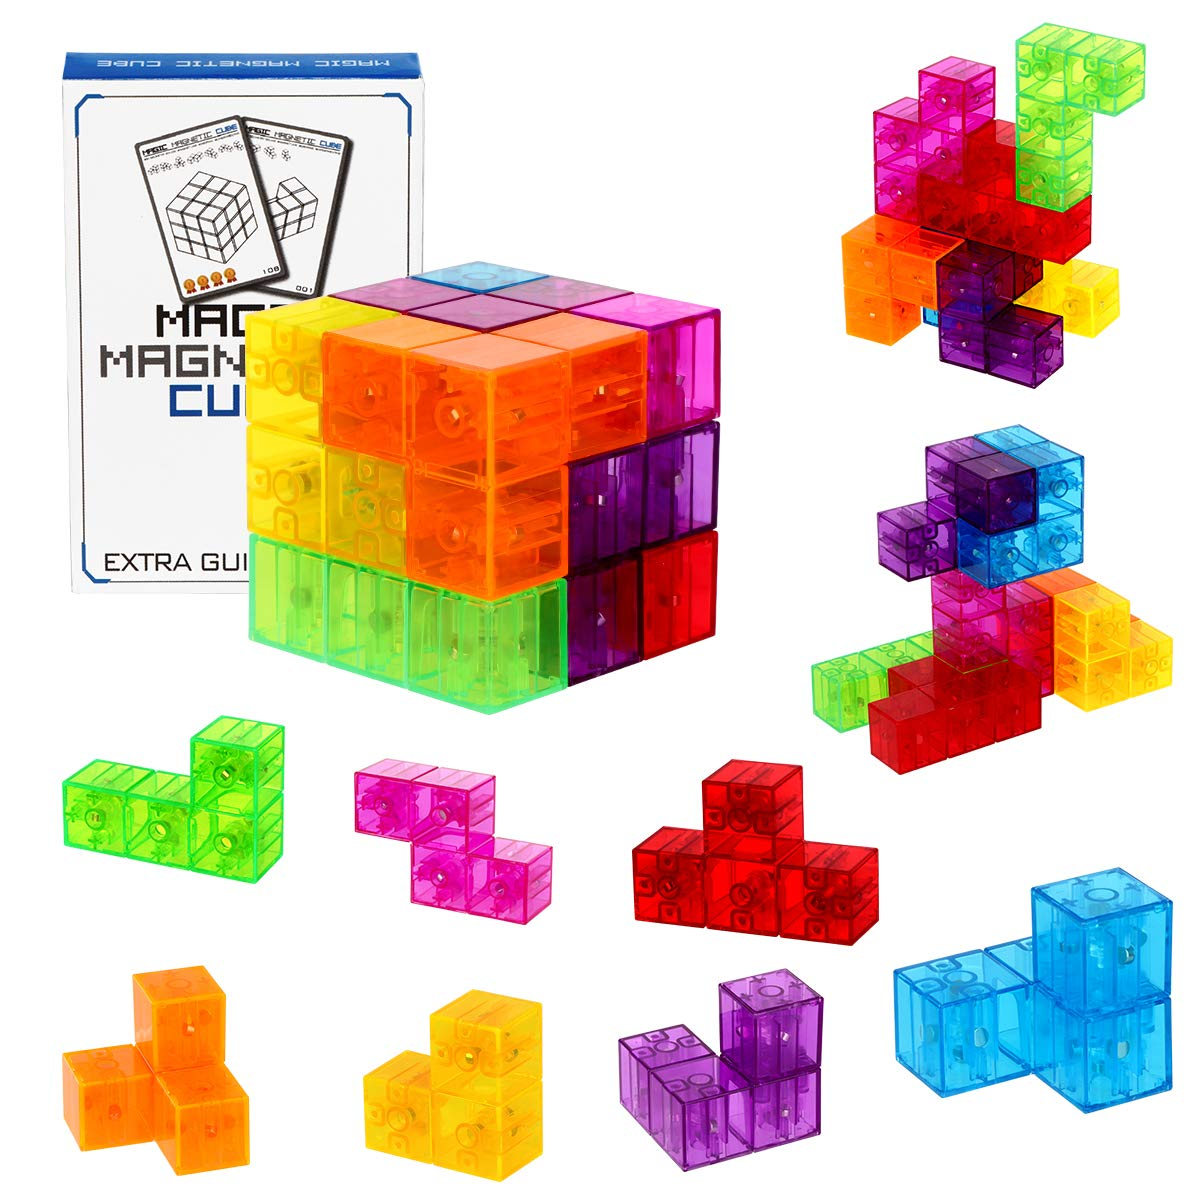 Magnetic Building Blocks Magic Magnetic 3D Puzzle Cubes, Set of 7 Multi Shapes Magnetic Blocks with 54 Guide Cards, Intelligence Developing and Stress Relief Fidget Toys by Dasdax